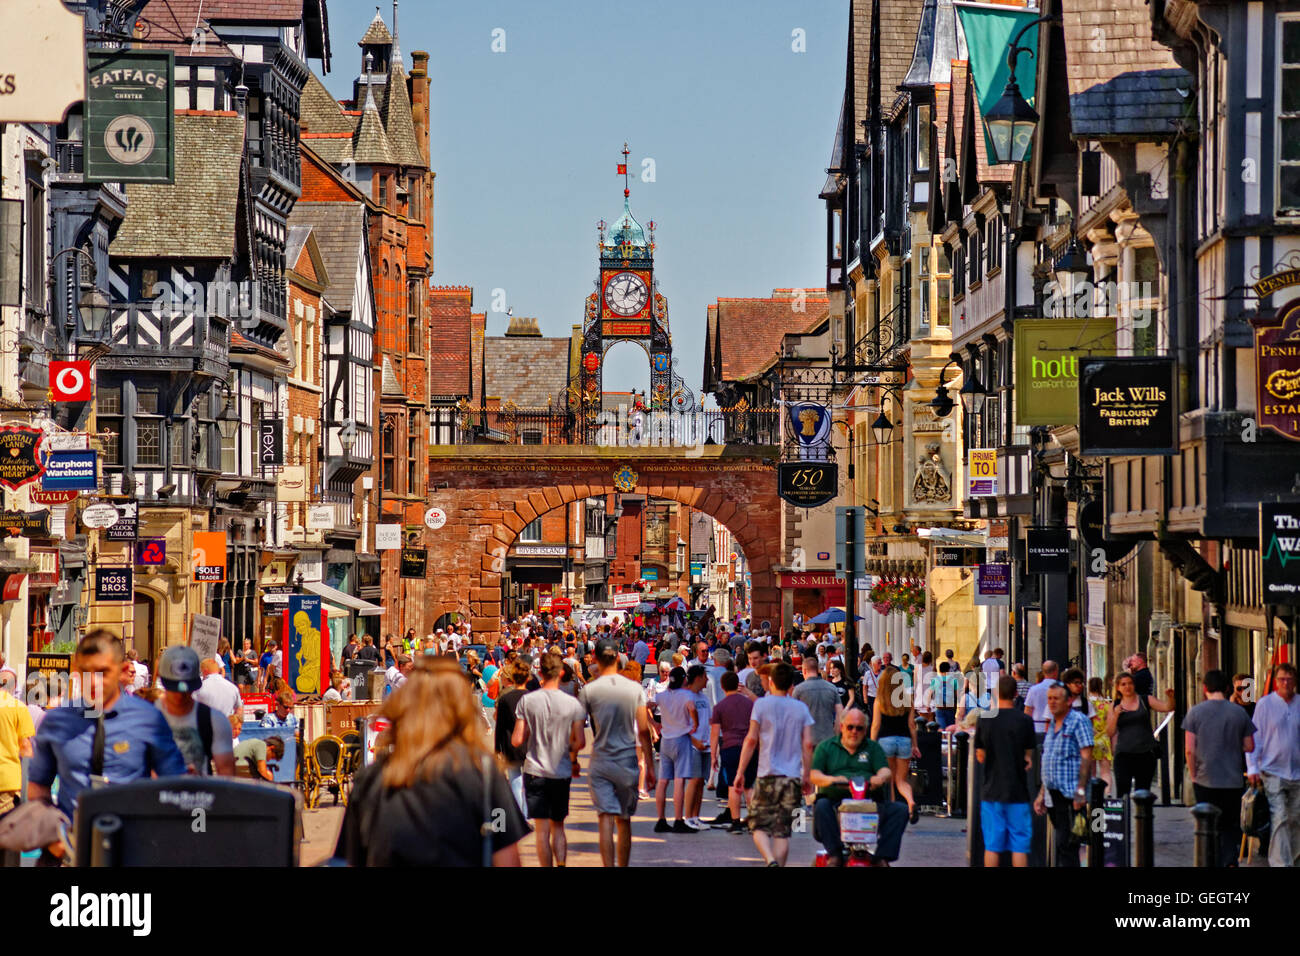 Eastgate and the Chester clock on the Roman wall in the city centre of Chester, the county town of Cheshire. - Stock Image